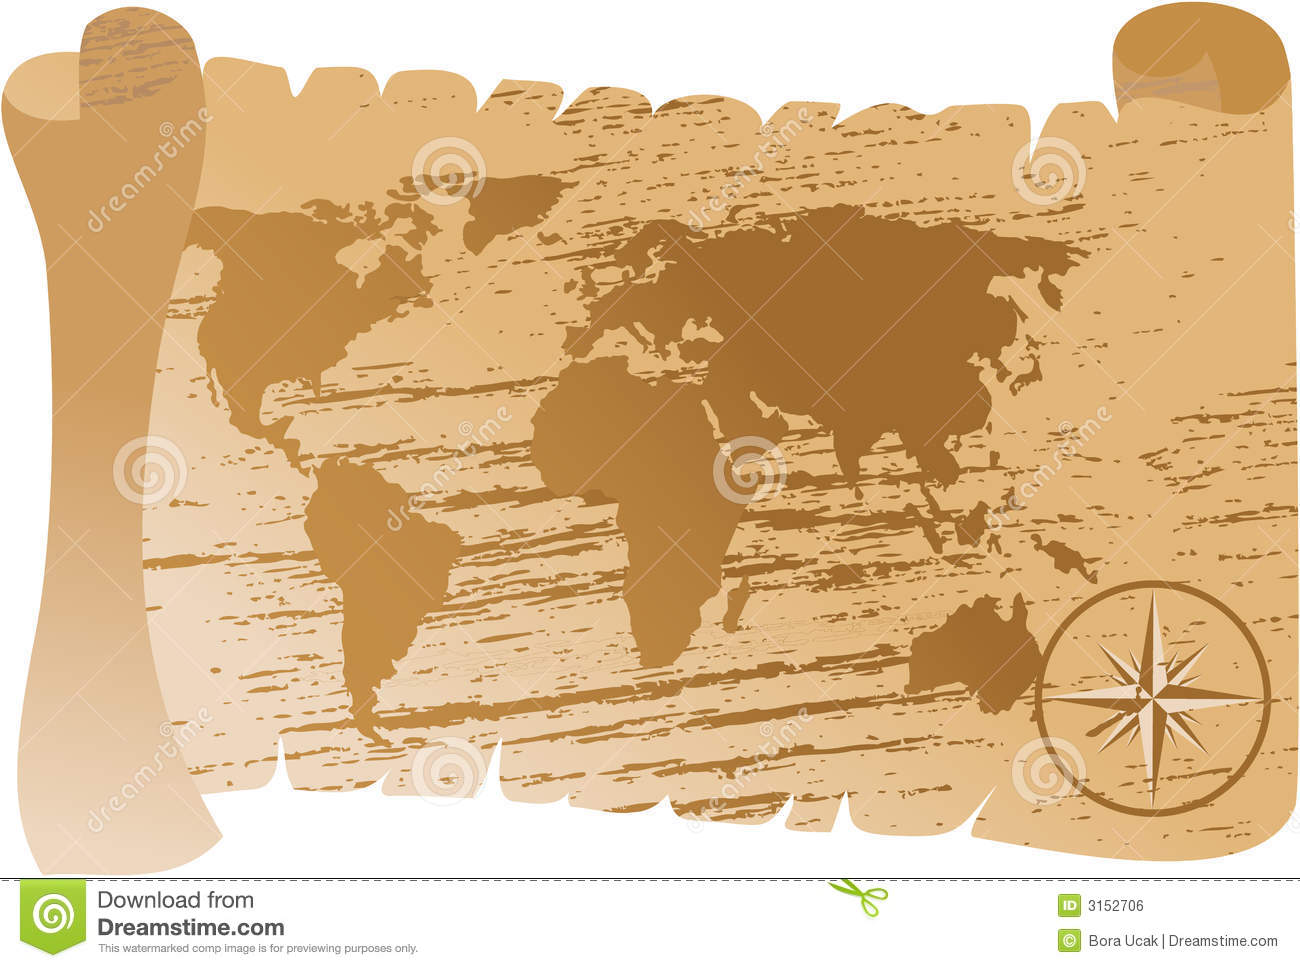 Old world map vector stock vector illustration of page 3152706 old world map vector gumiabroncs Image collections